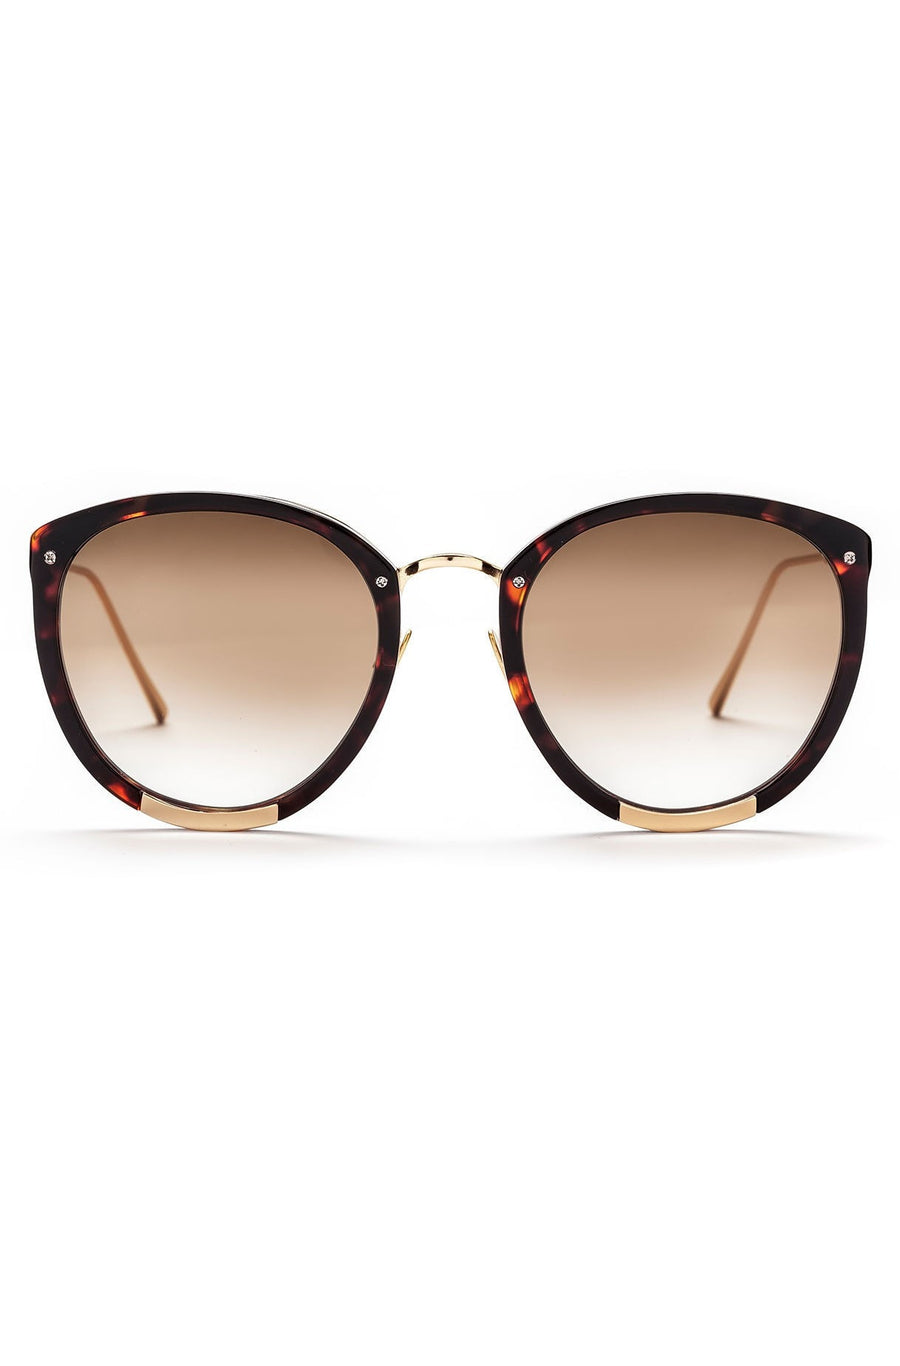 Sunday Somewhere Zoe Sunglasses Black